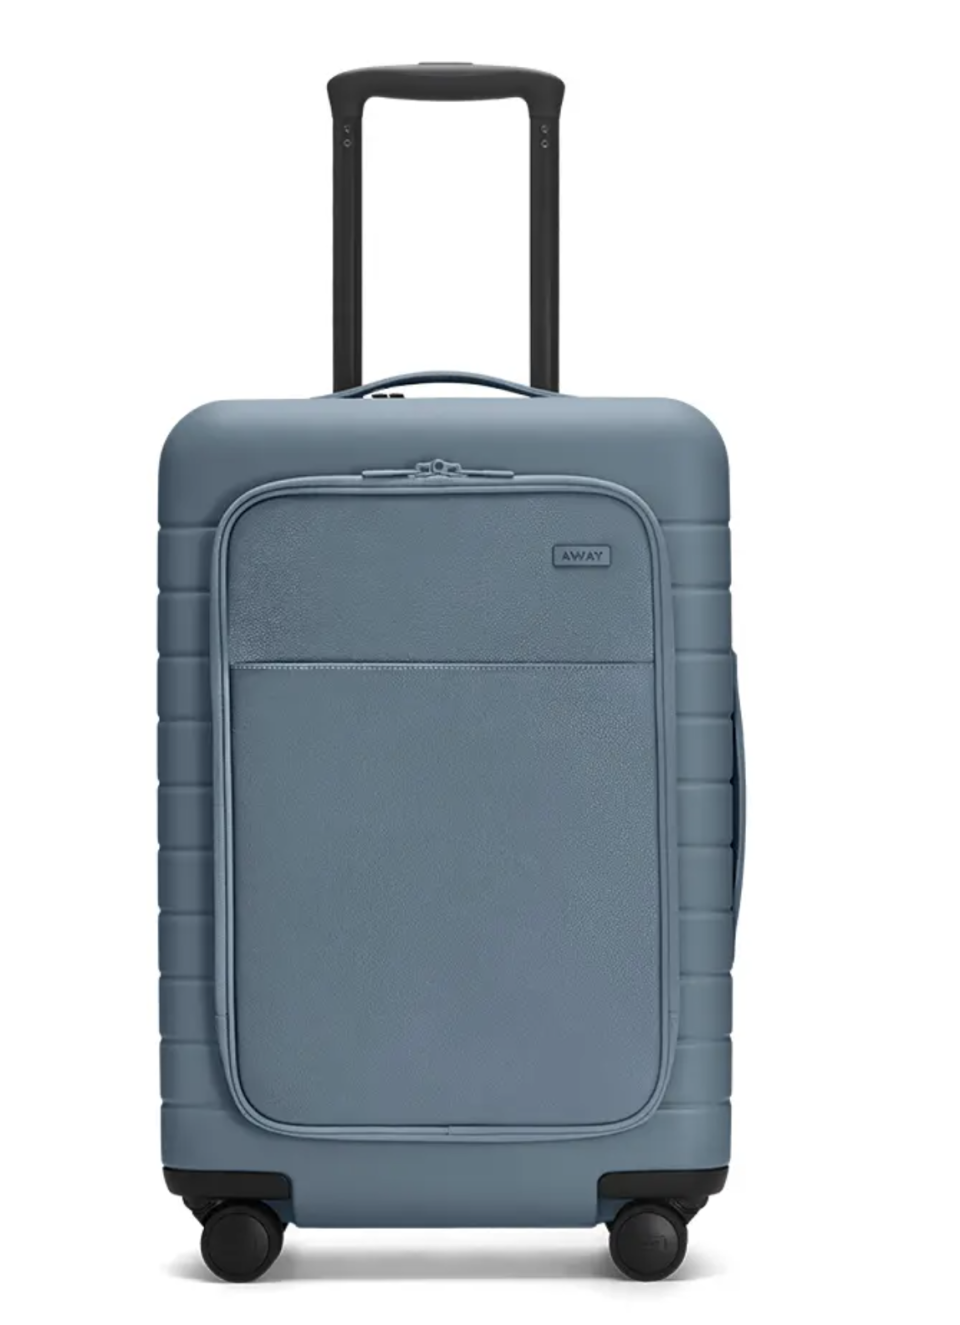 The Bigger Carry-On with Pocket- Away.